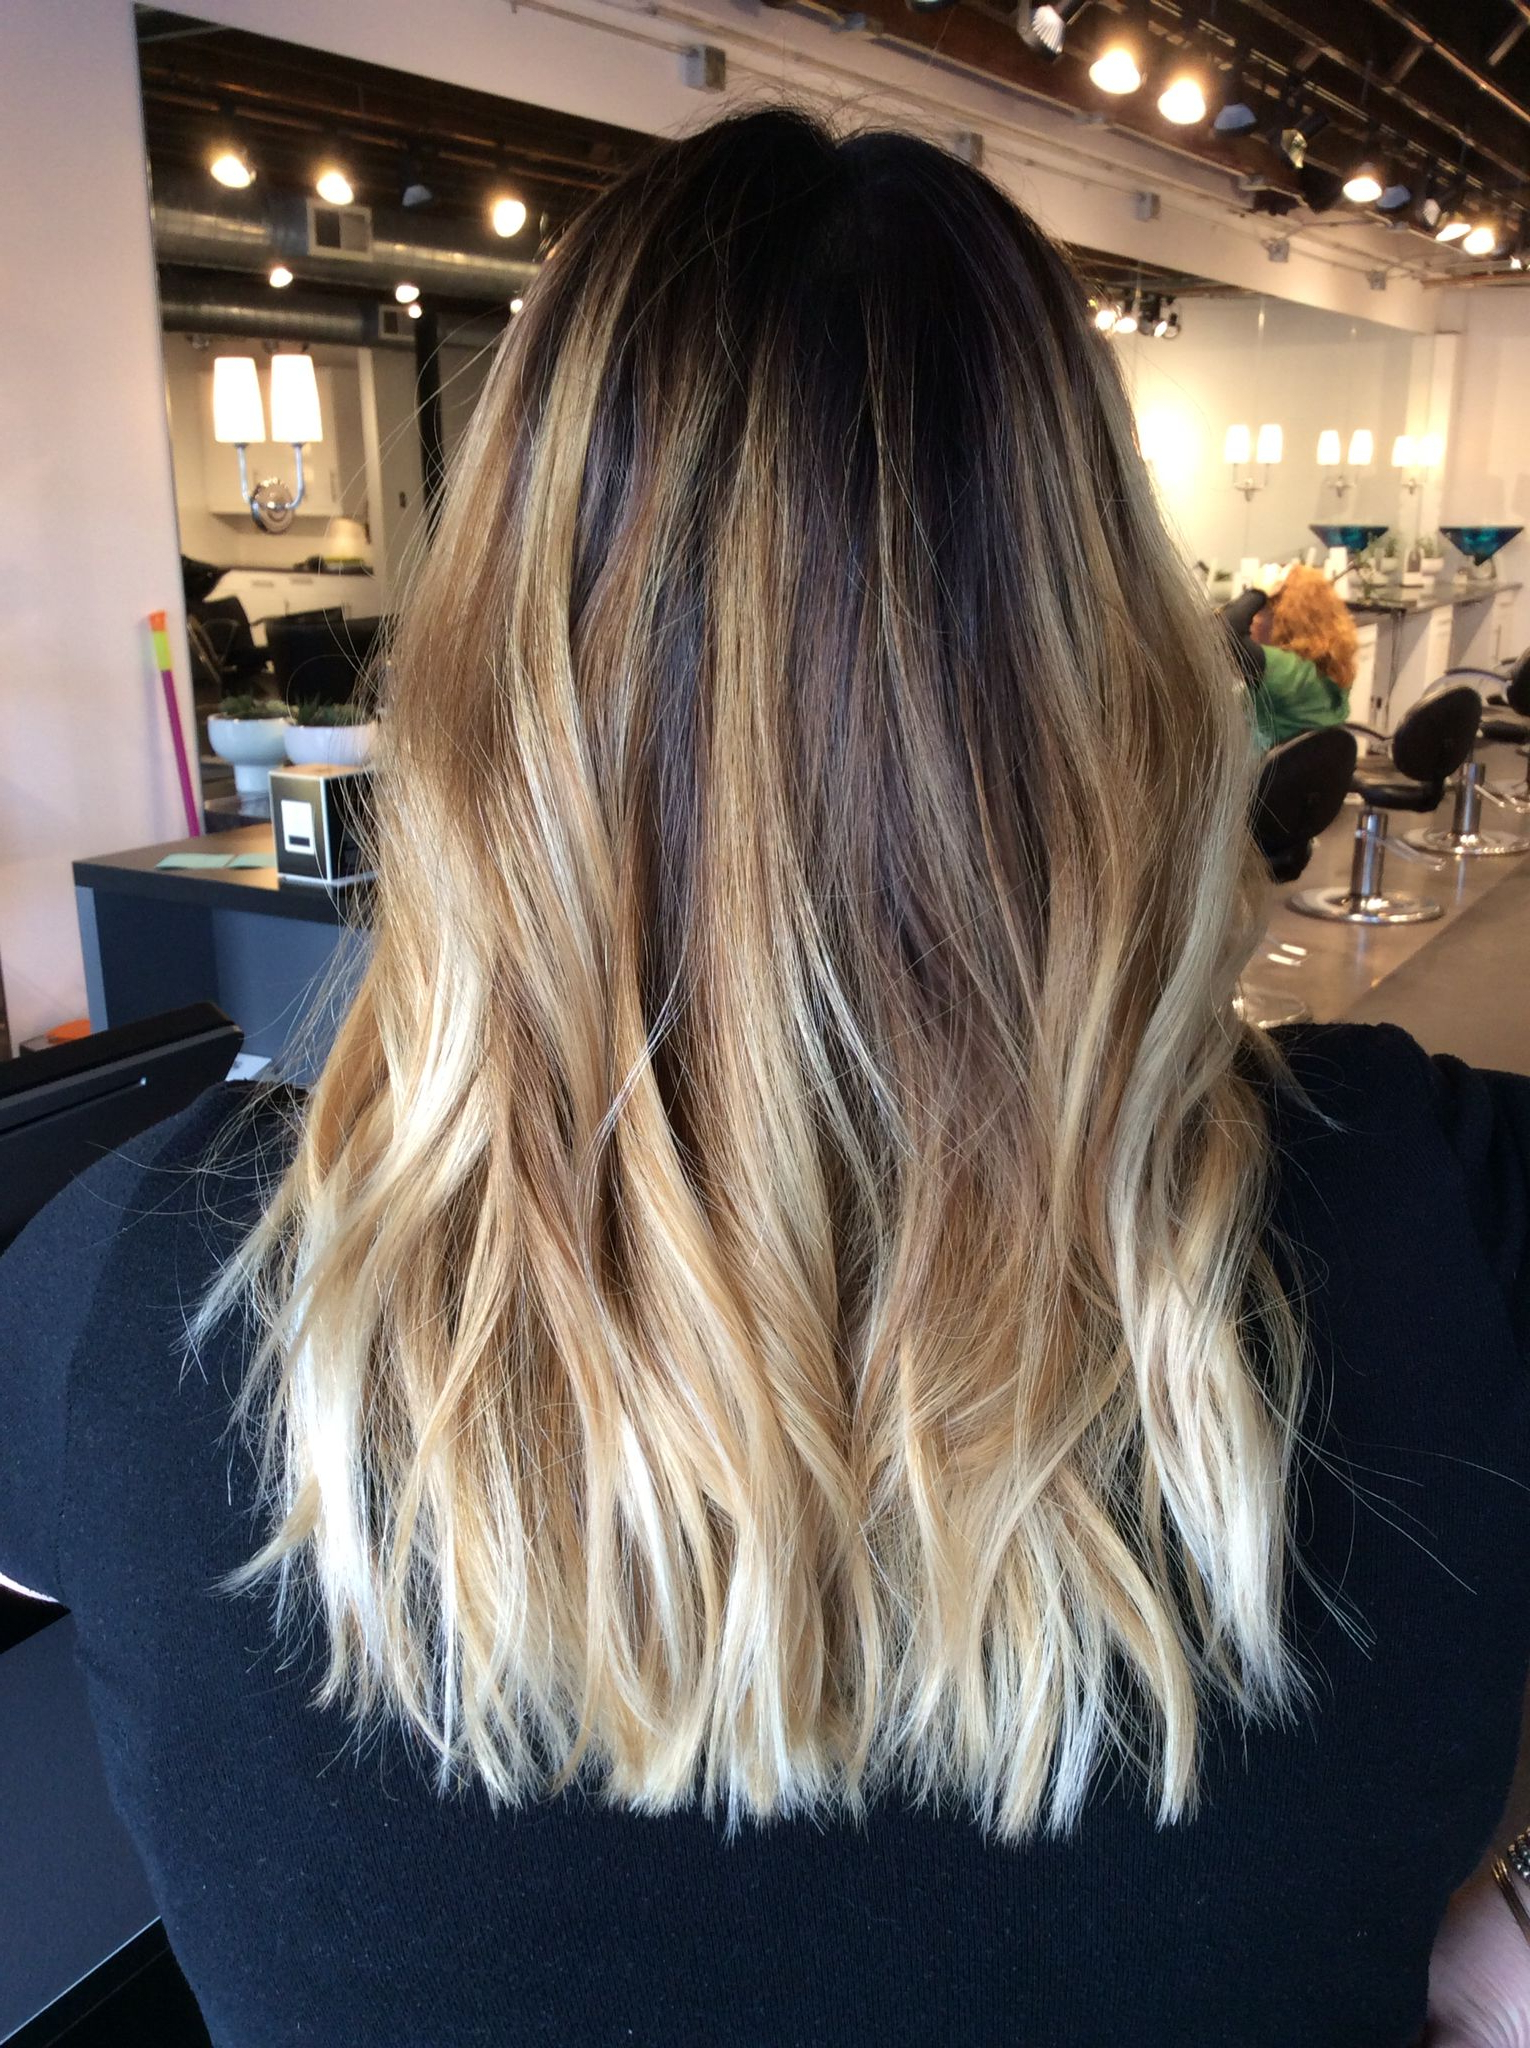 Hair Pertaining To Popular Long Thick Black Hairstyles With Light Brown Balayage (Gallery 10 of 20)